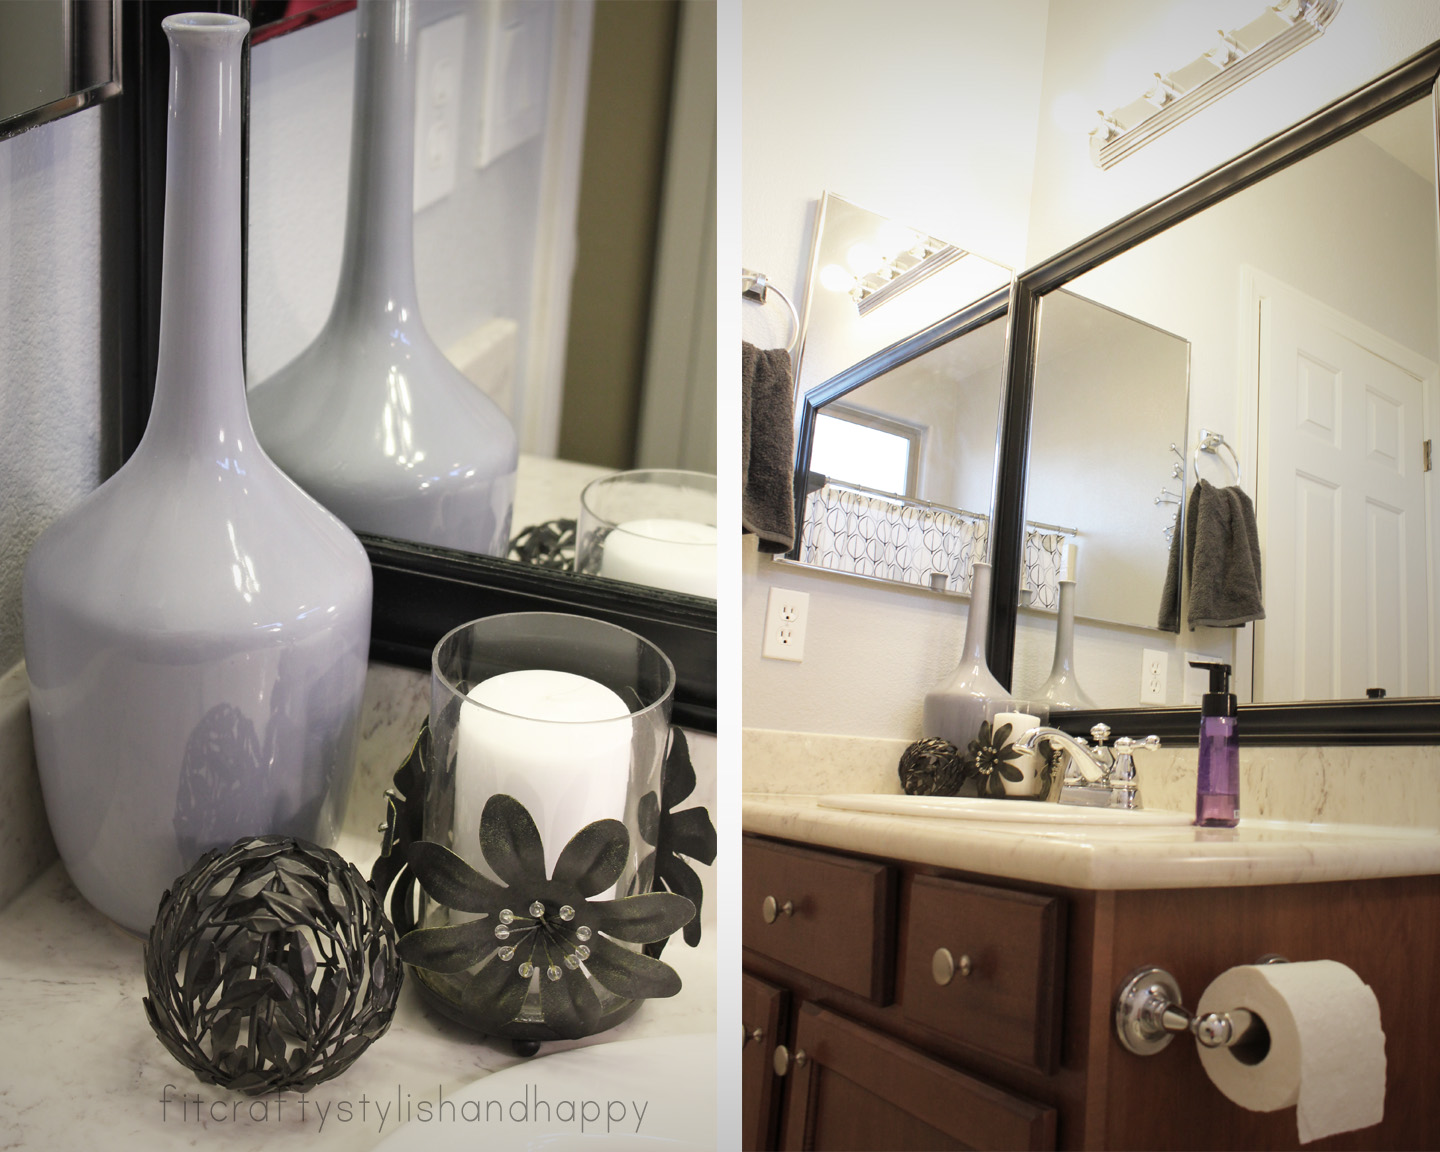 Fit crafty stylish and happy guest bathroom makeover for Bathroom decorating tips